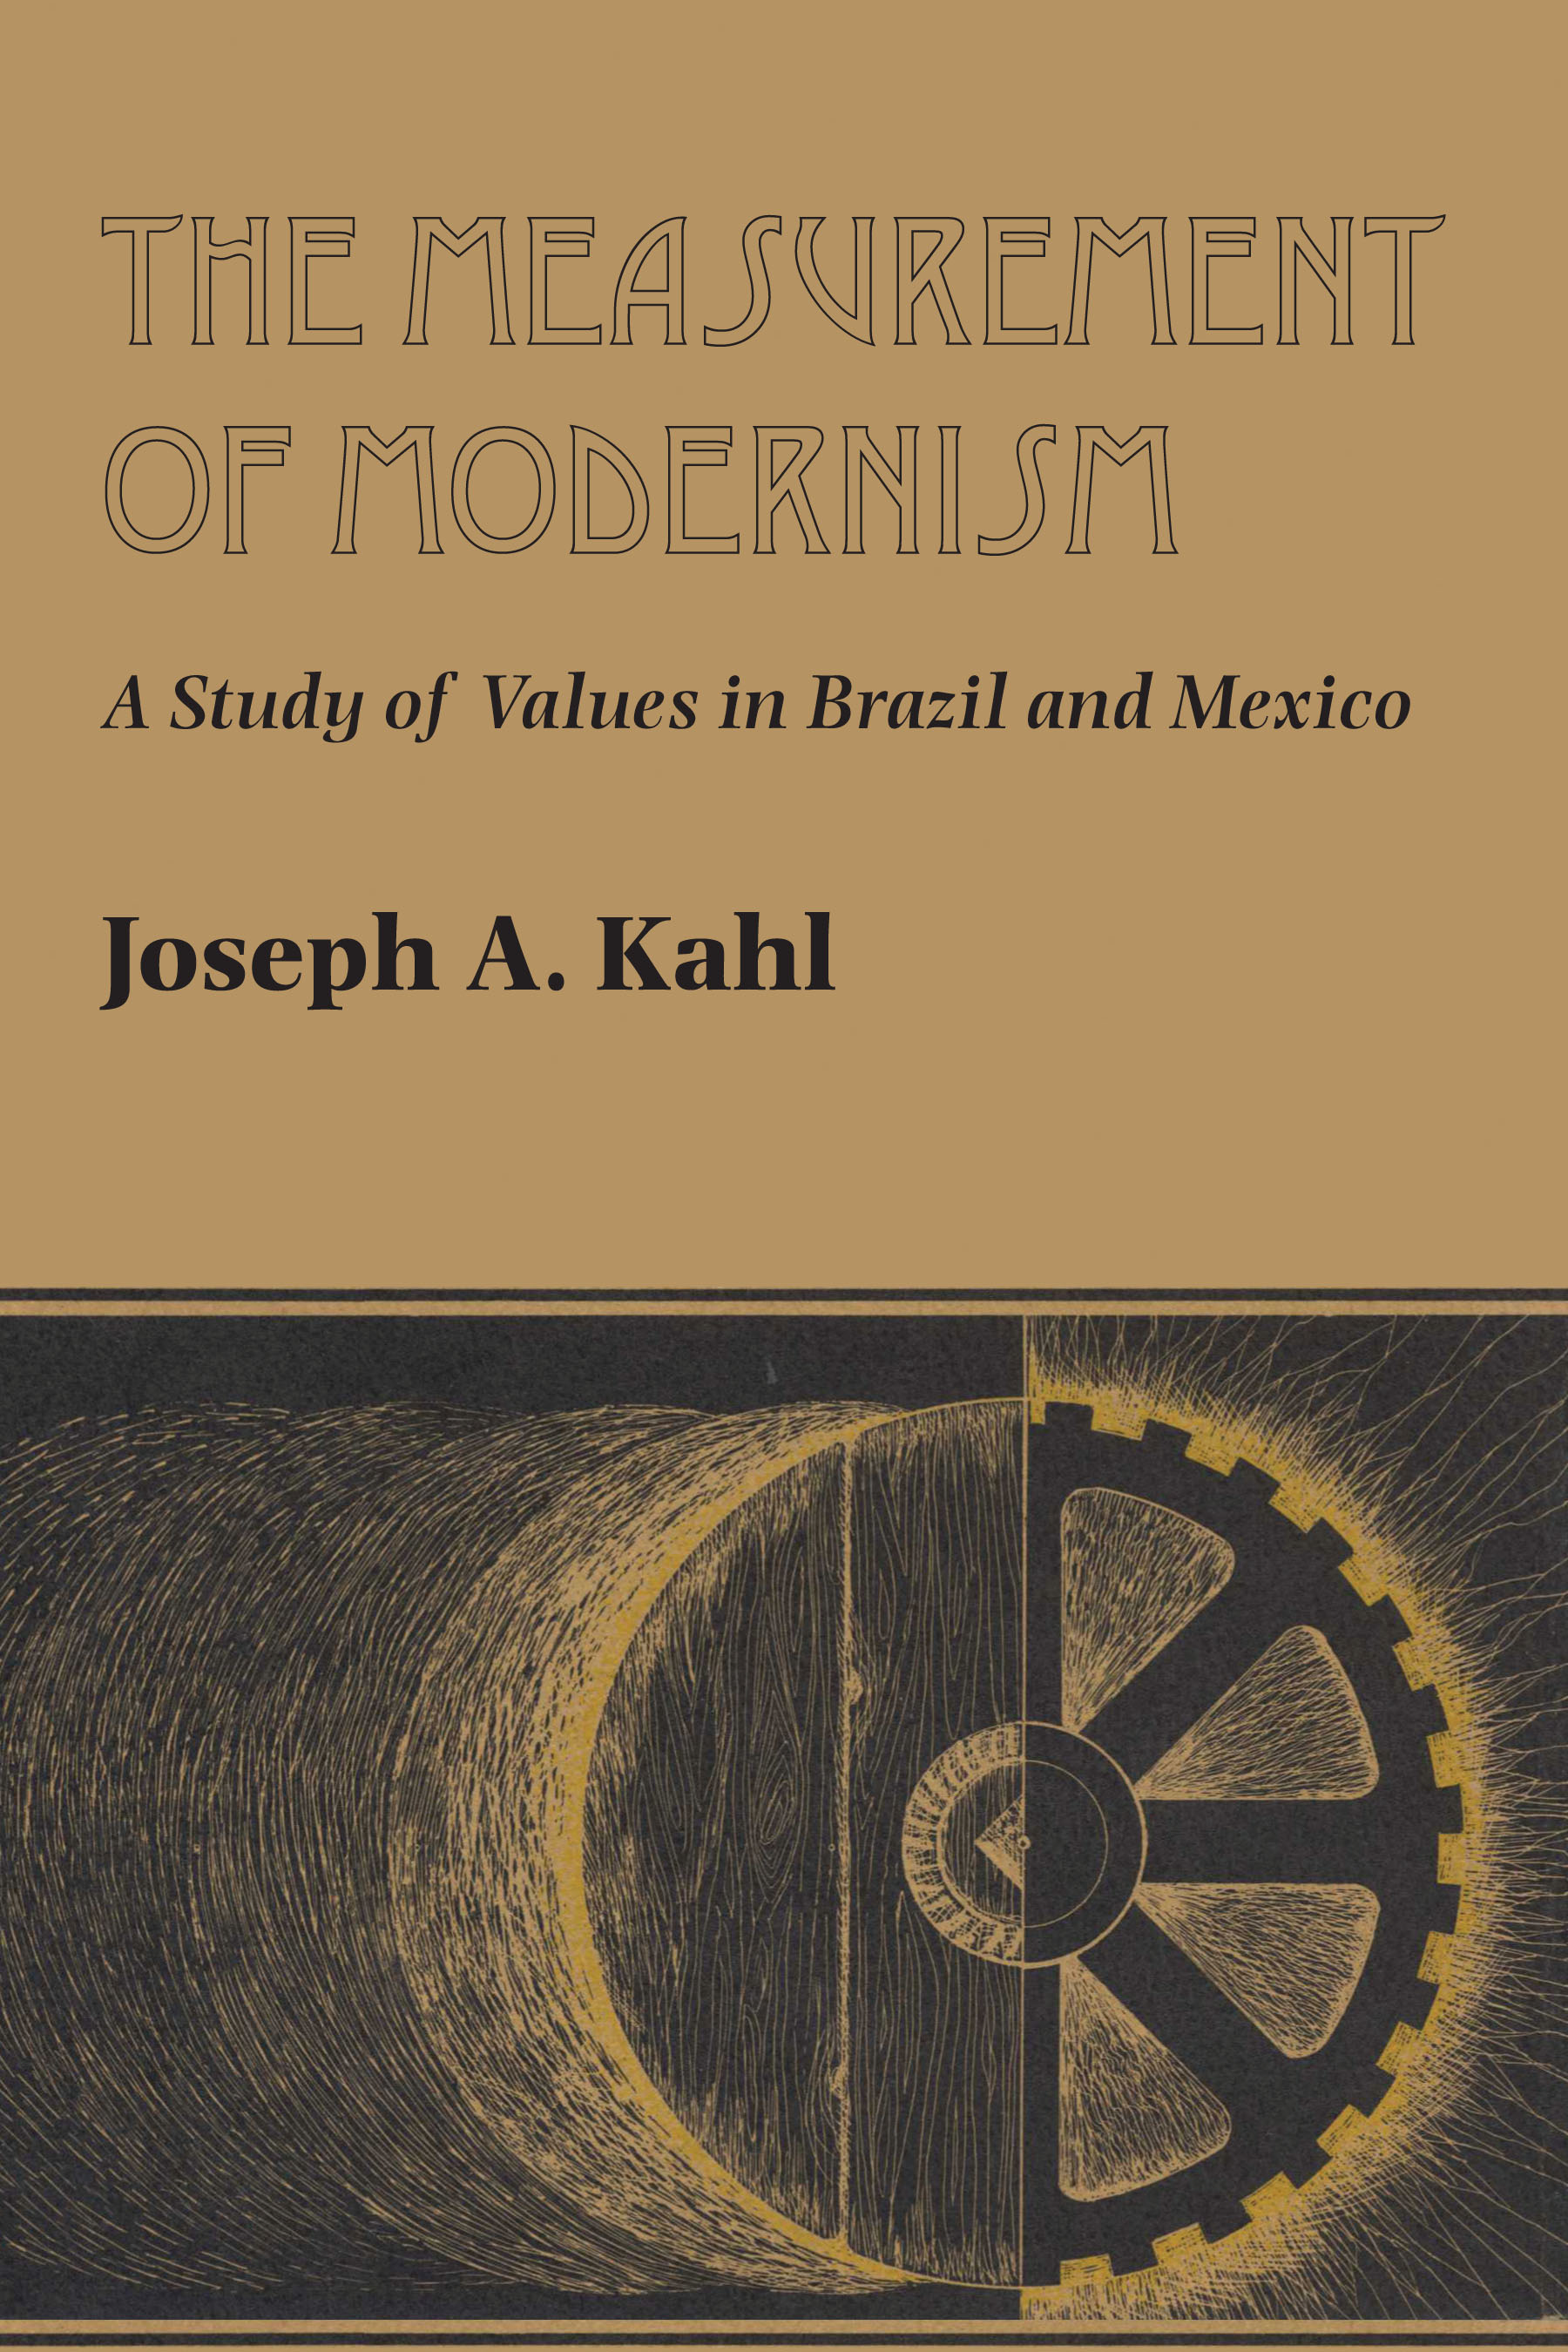 Cover of The Measurement of Modernism